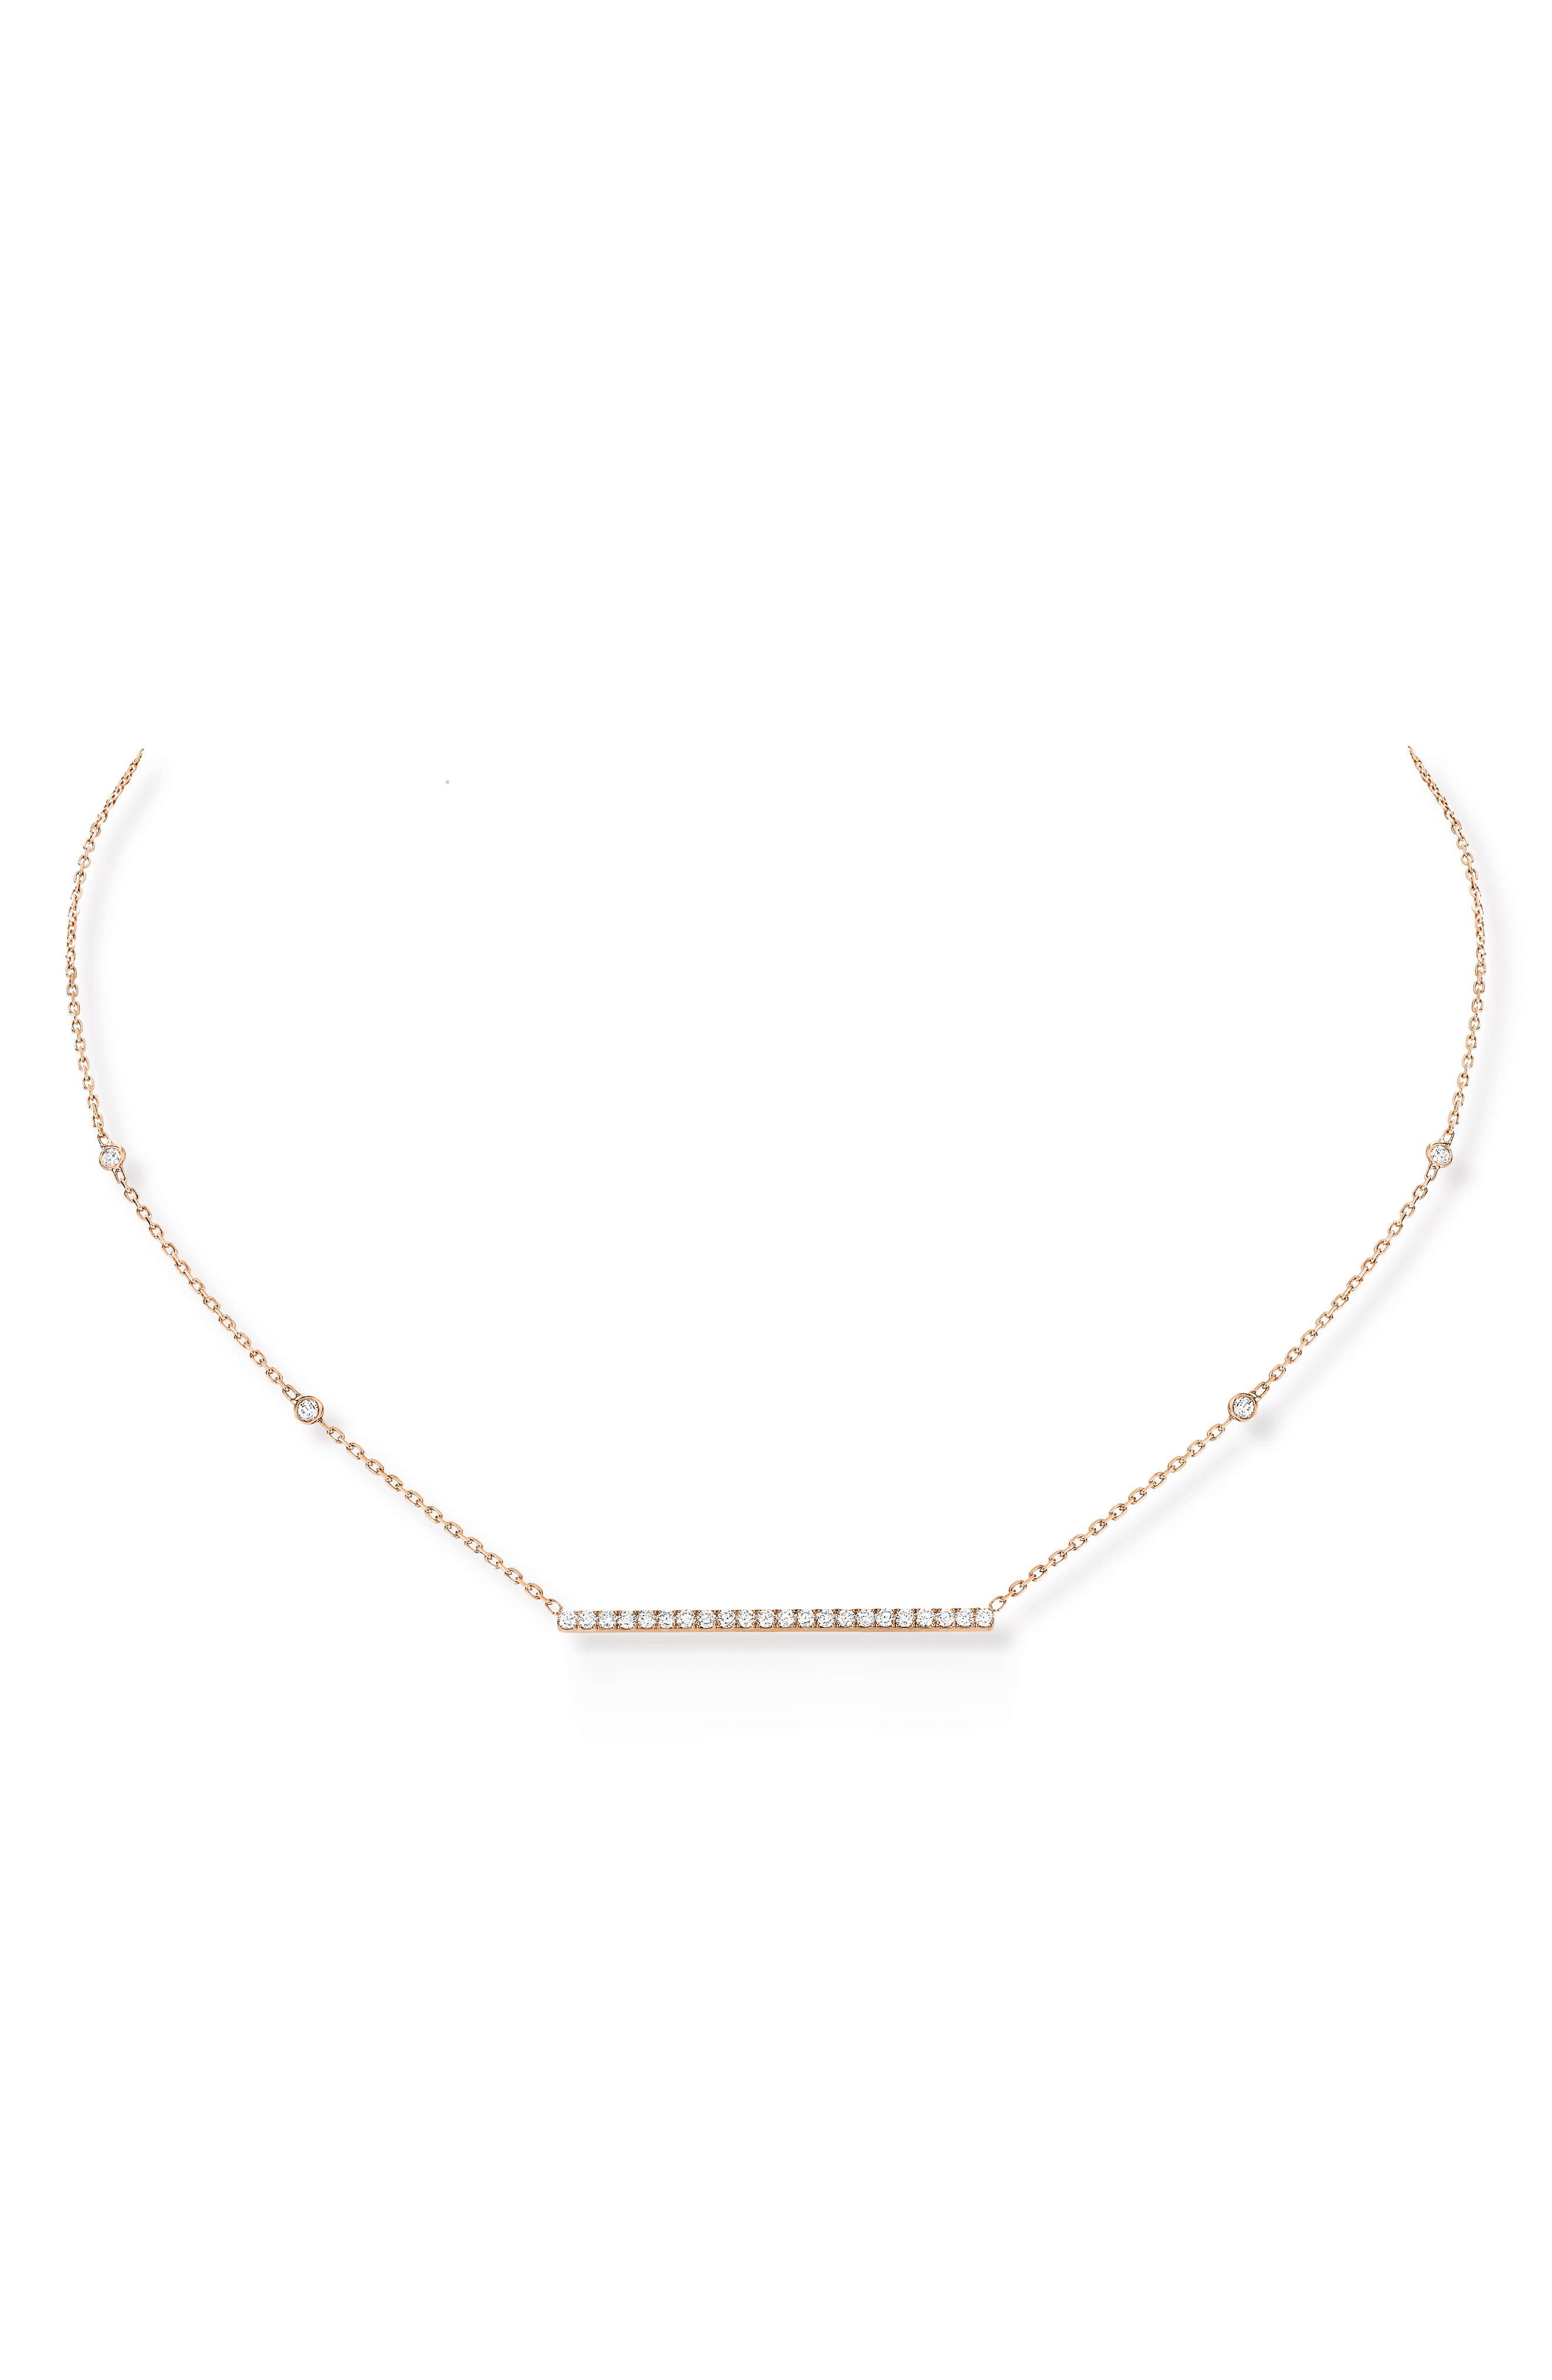 Gatsby Diamond Bar Necklace,                         Main,                         color, Rose Gold